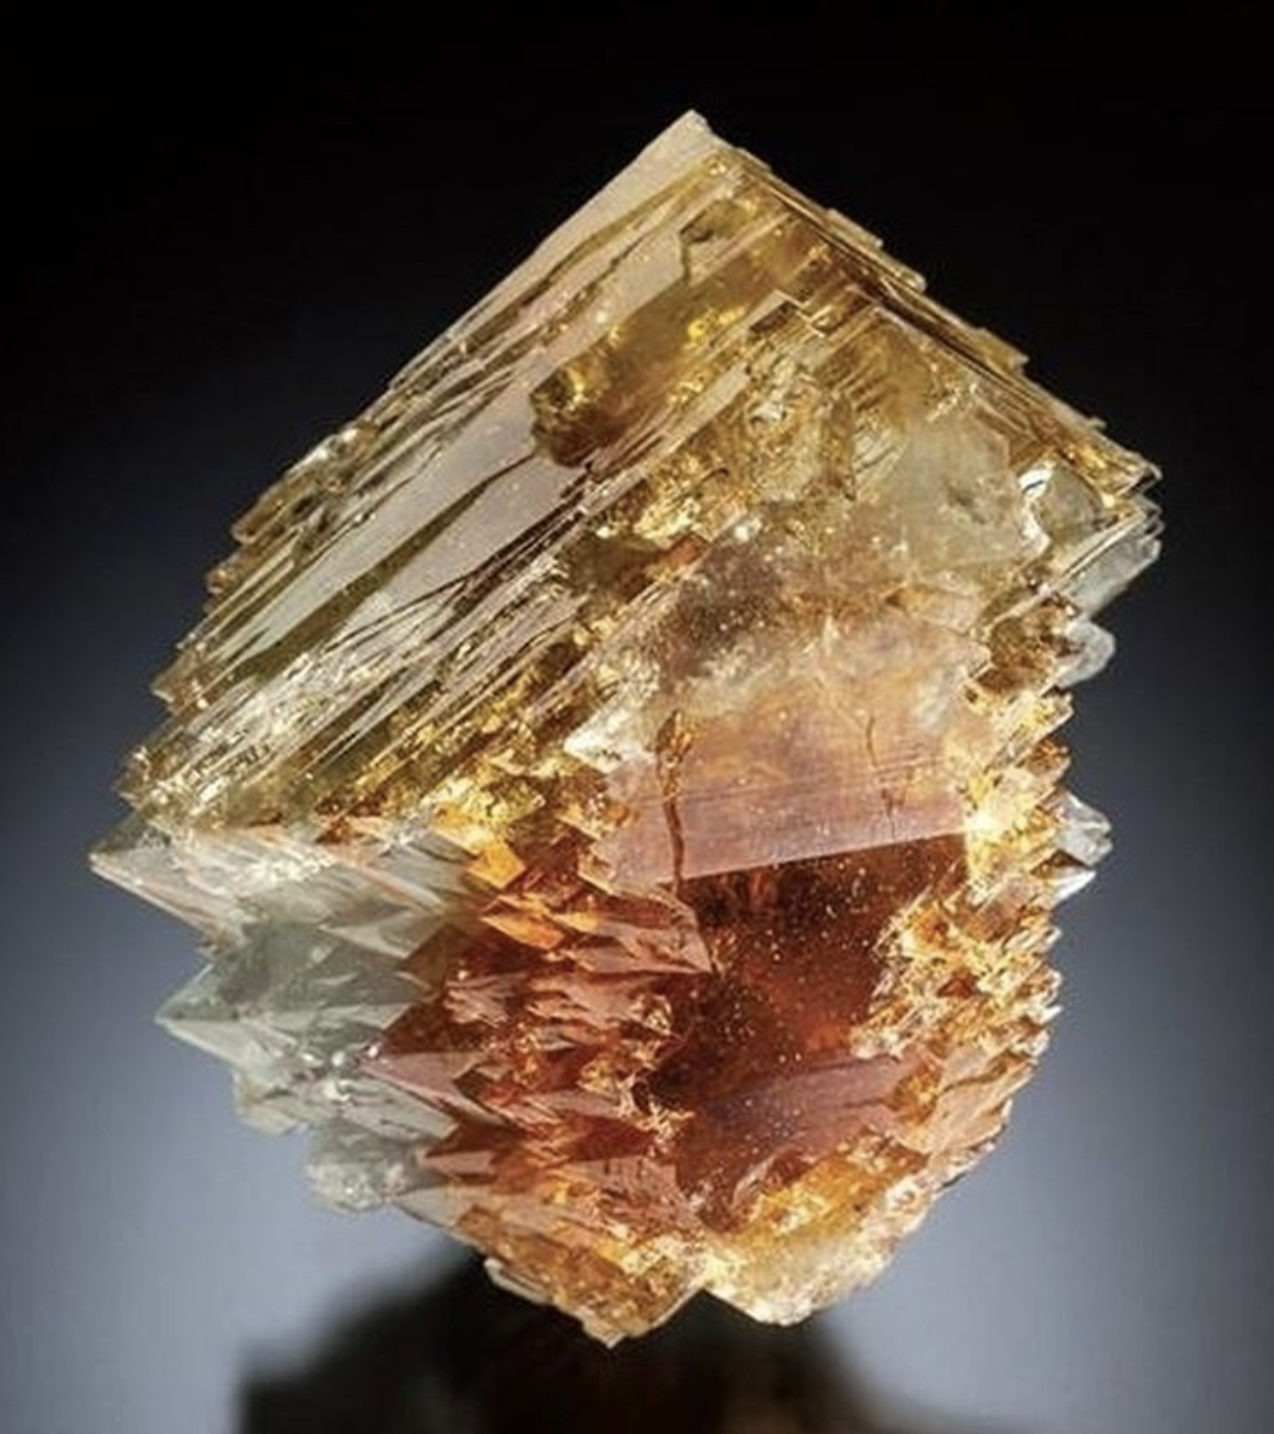 Crystal of the week: Citrine